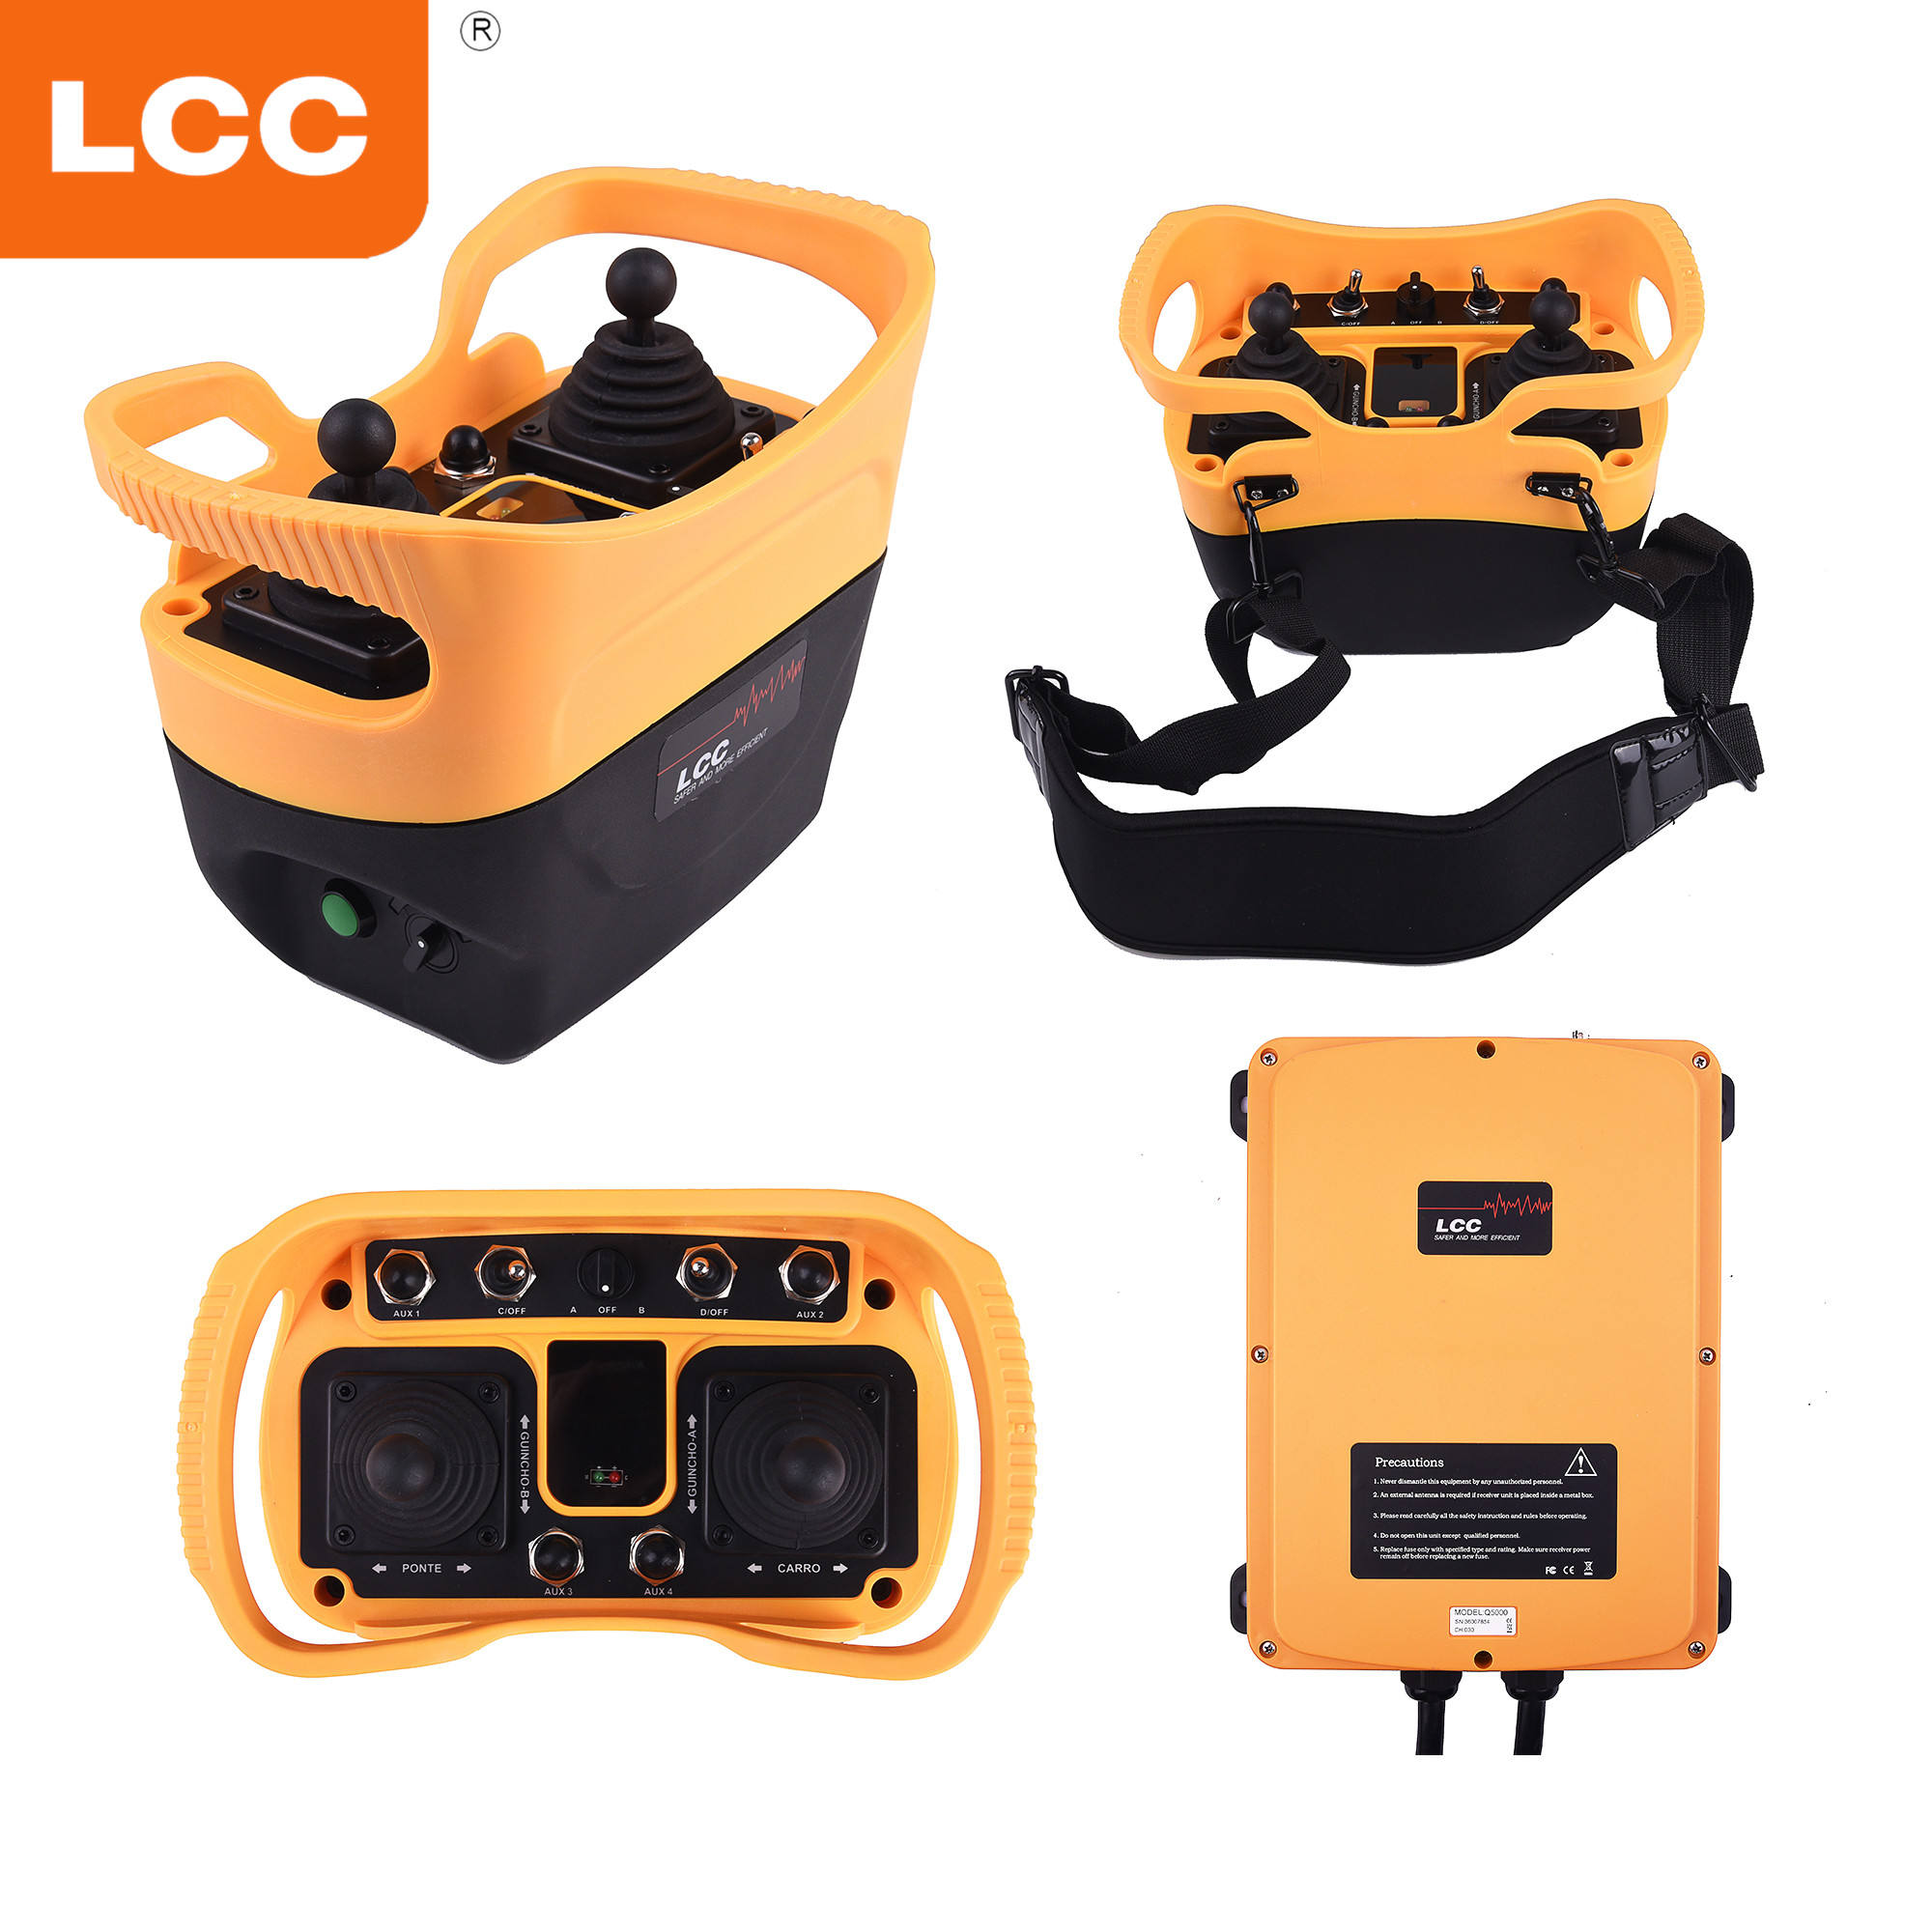 Waterproof industrial wireless radio remote control use for electro-mechanic or electro-hydraulic machine